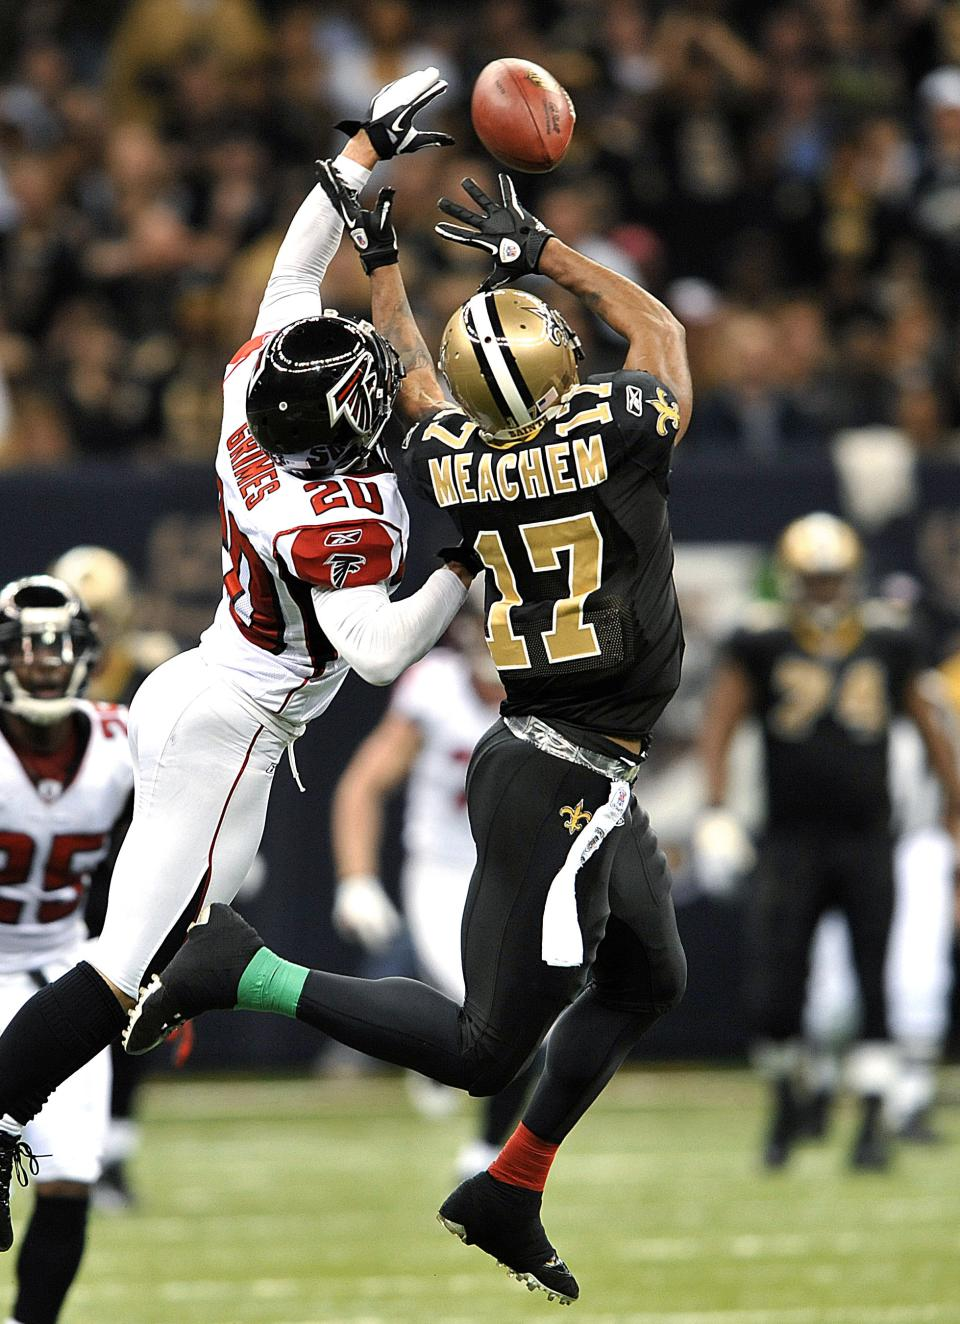 Atlanta Falcons cornerback Brent Grimes (20) tries to break up a pass intended for New Orleans Saints wide receiver Robert Meachem (17) during an NFL football game in New Orleans, Monday, Dec. 26, 2011. (AP Photo/Bill Feig)